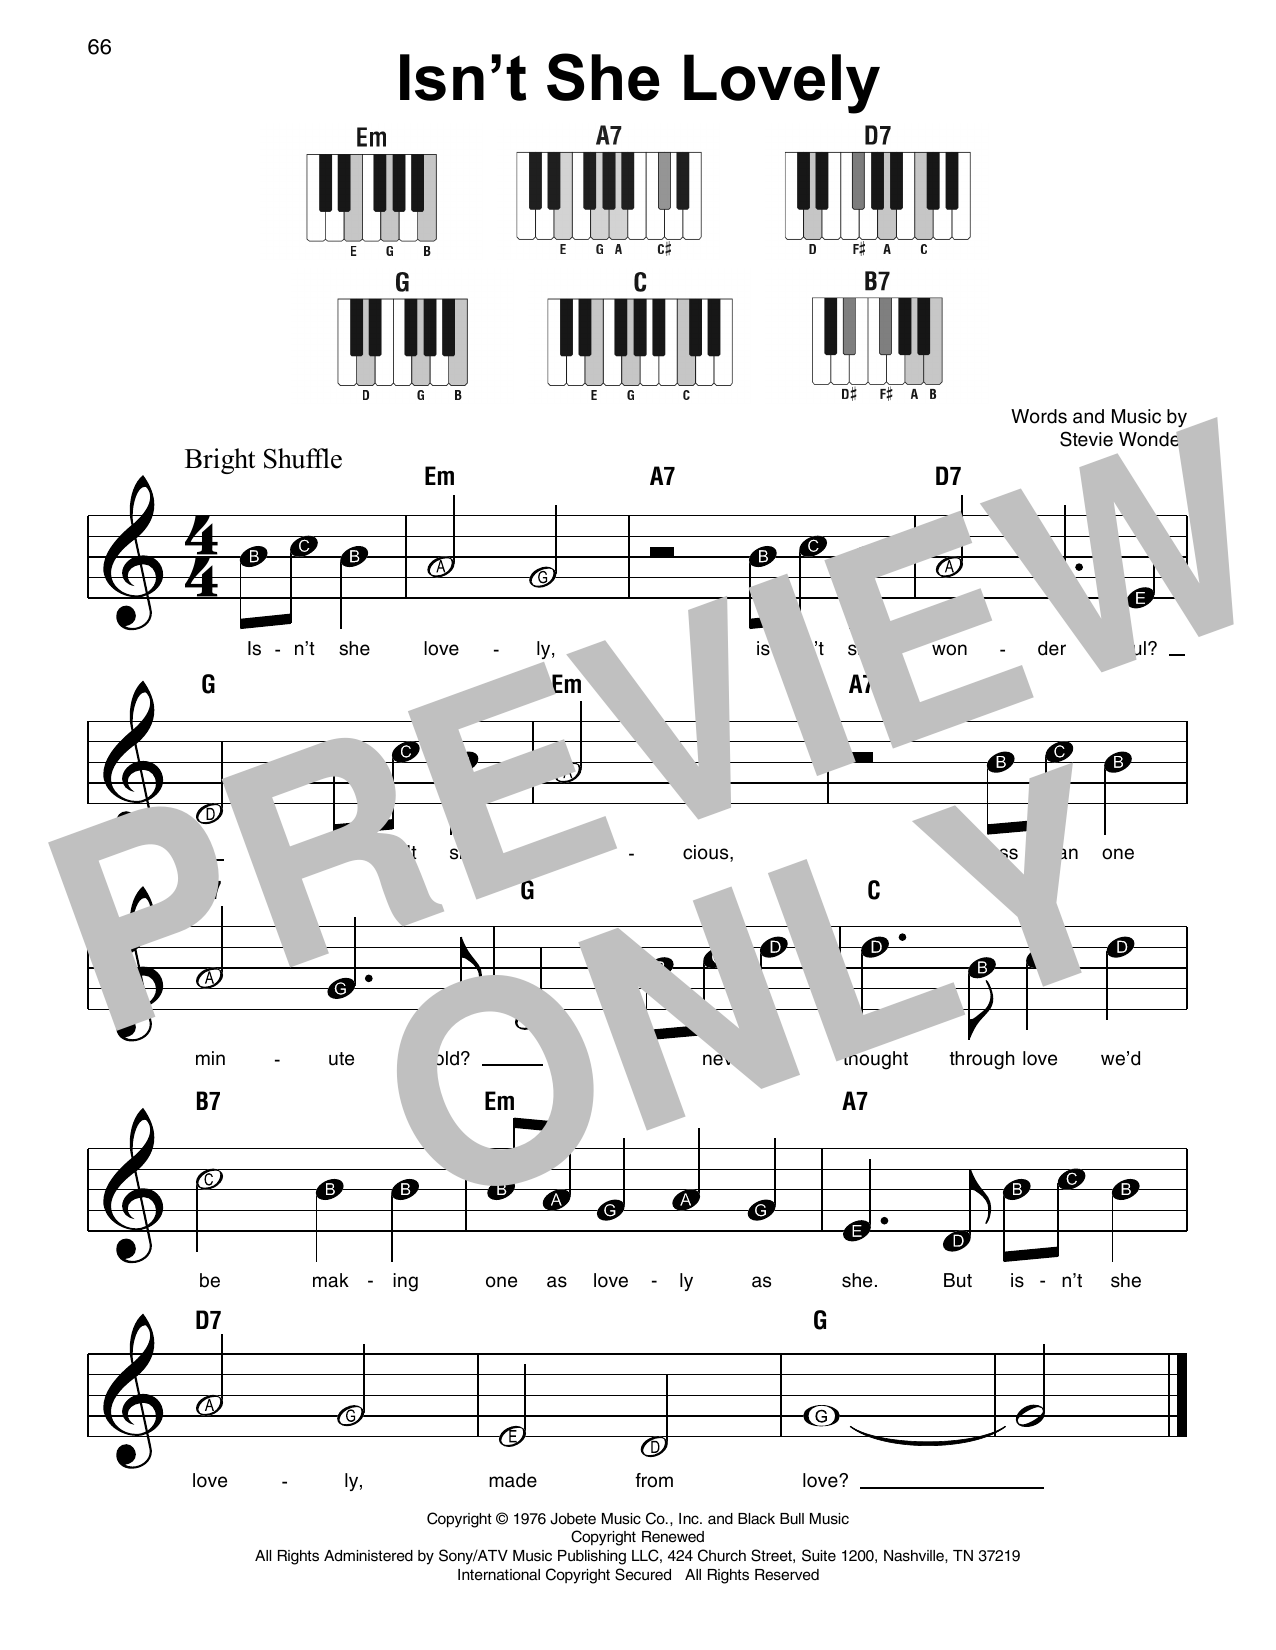 Isn't She Lovely Sheet Music